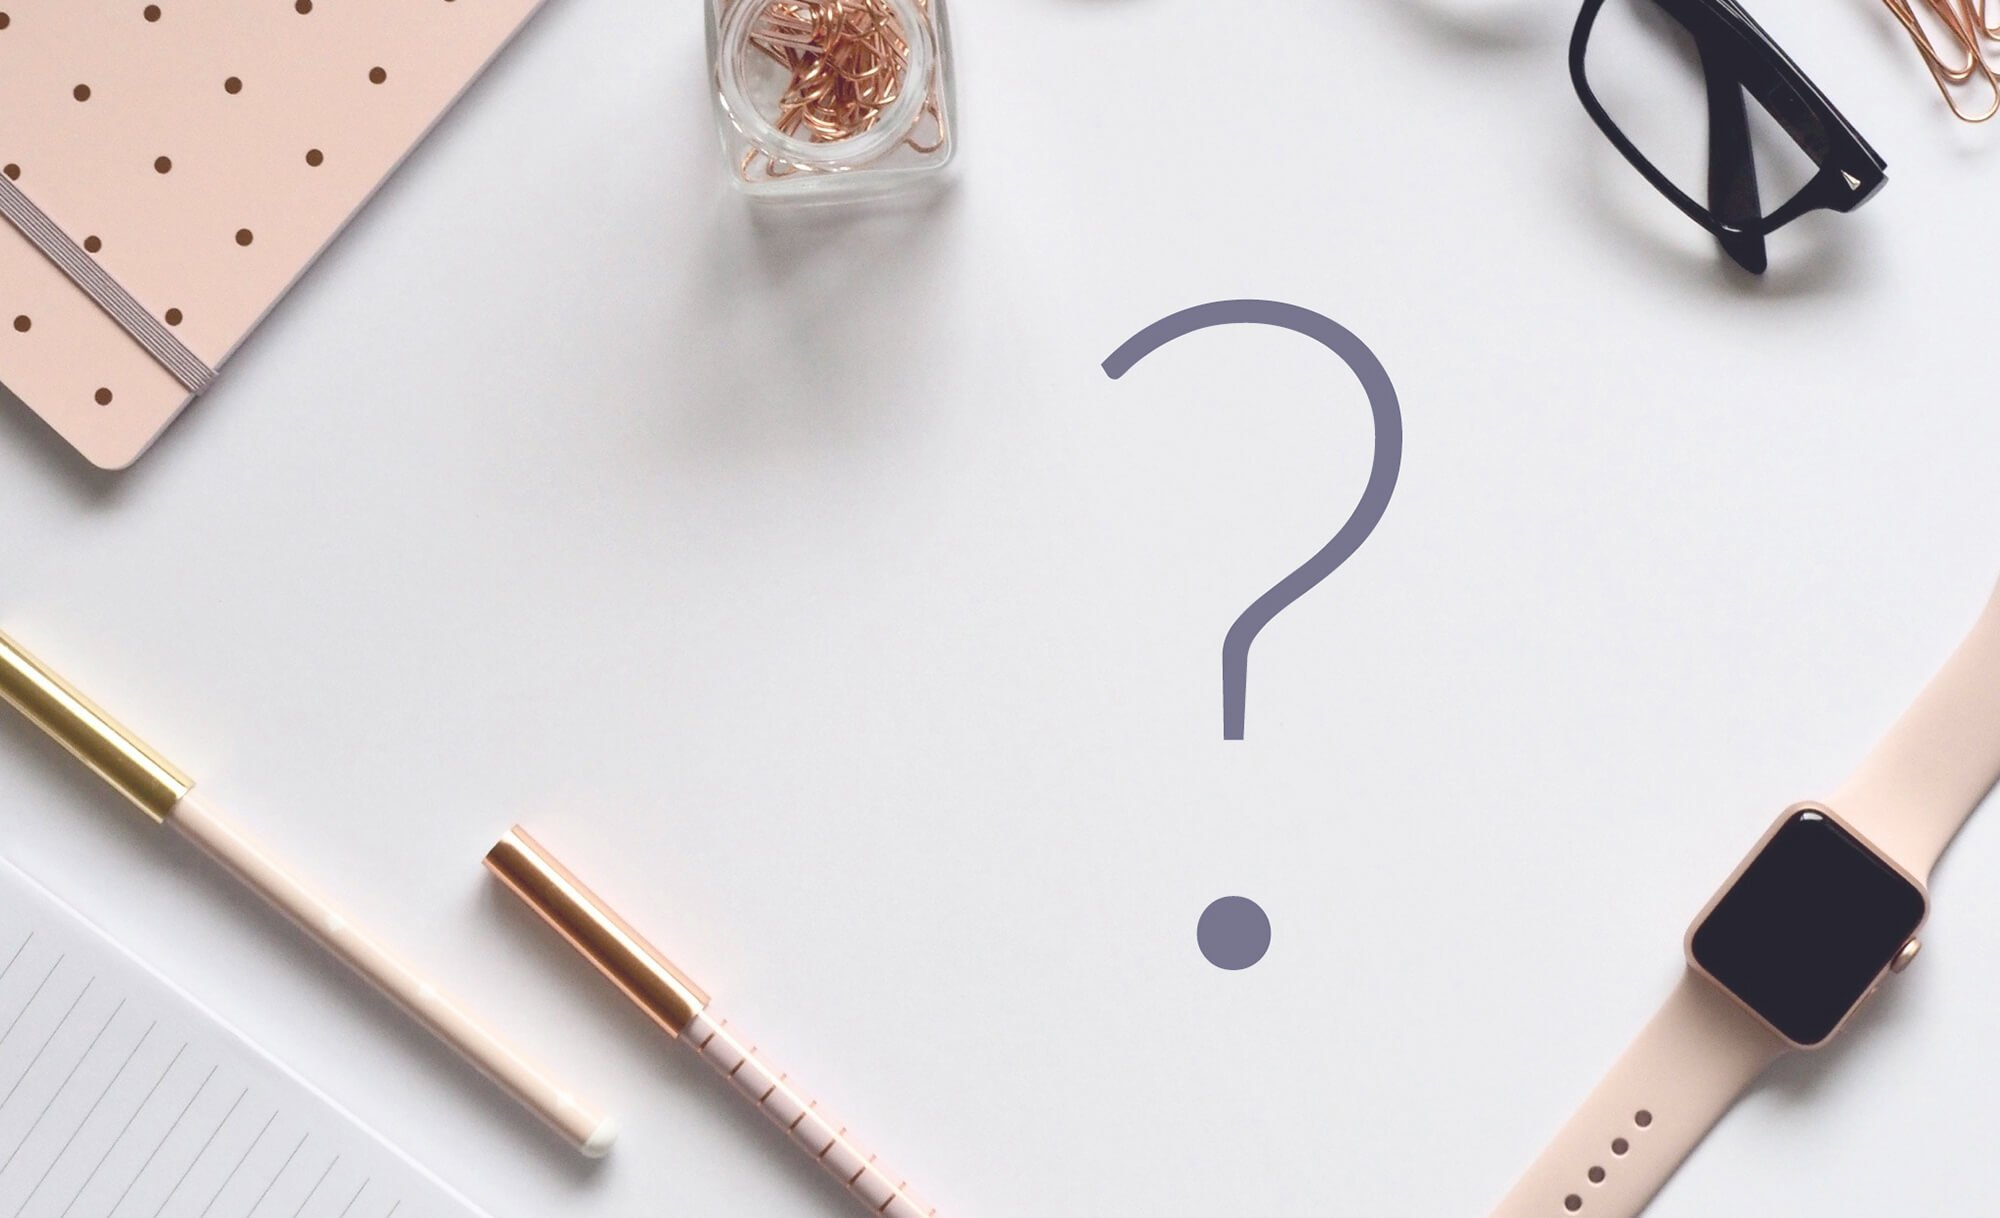 image of a question mark on a desk